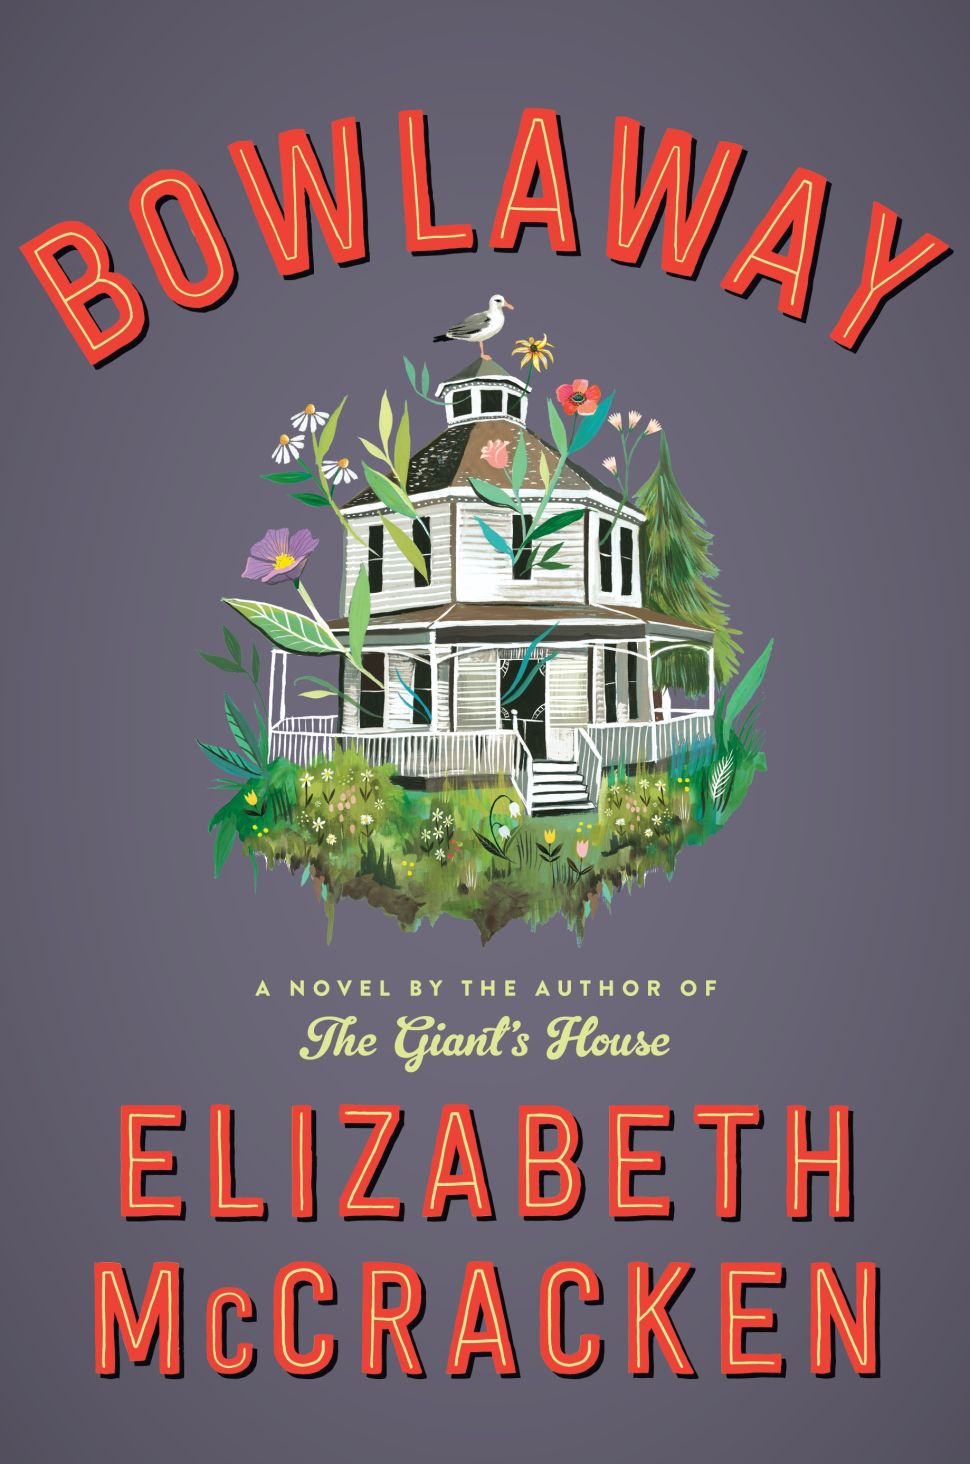 Elizabeth McCracken Celebrates New England Eccentricity in Her New Novel, 'Bowlaway'